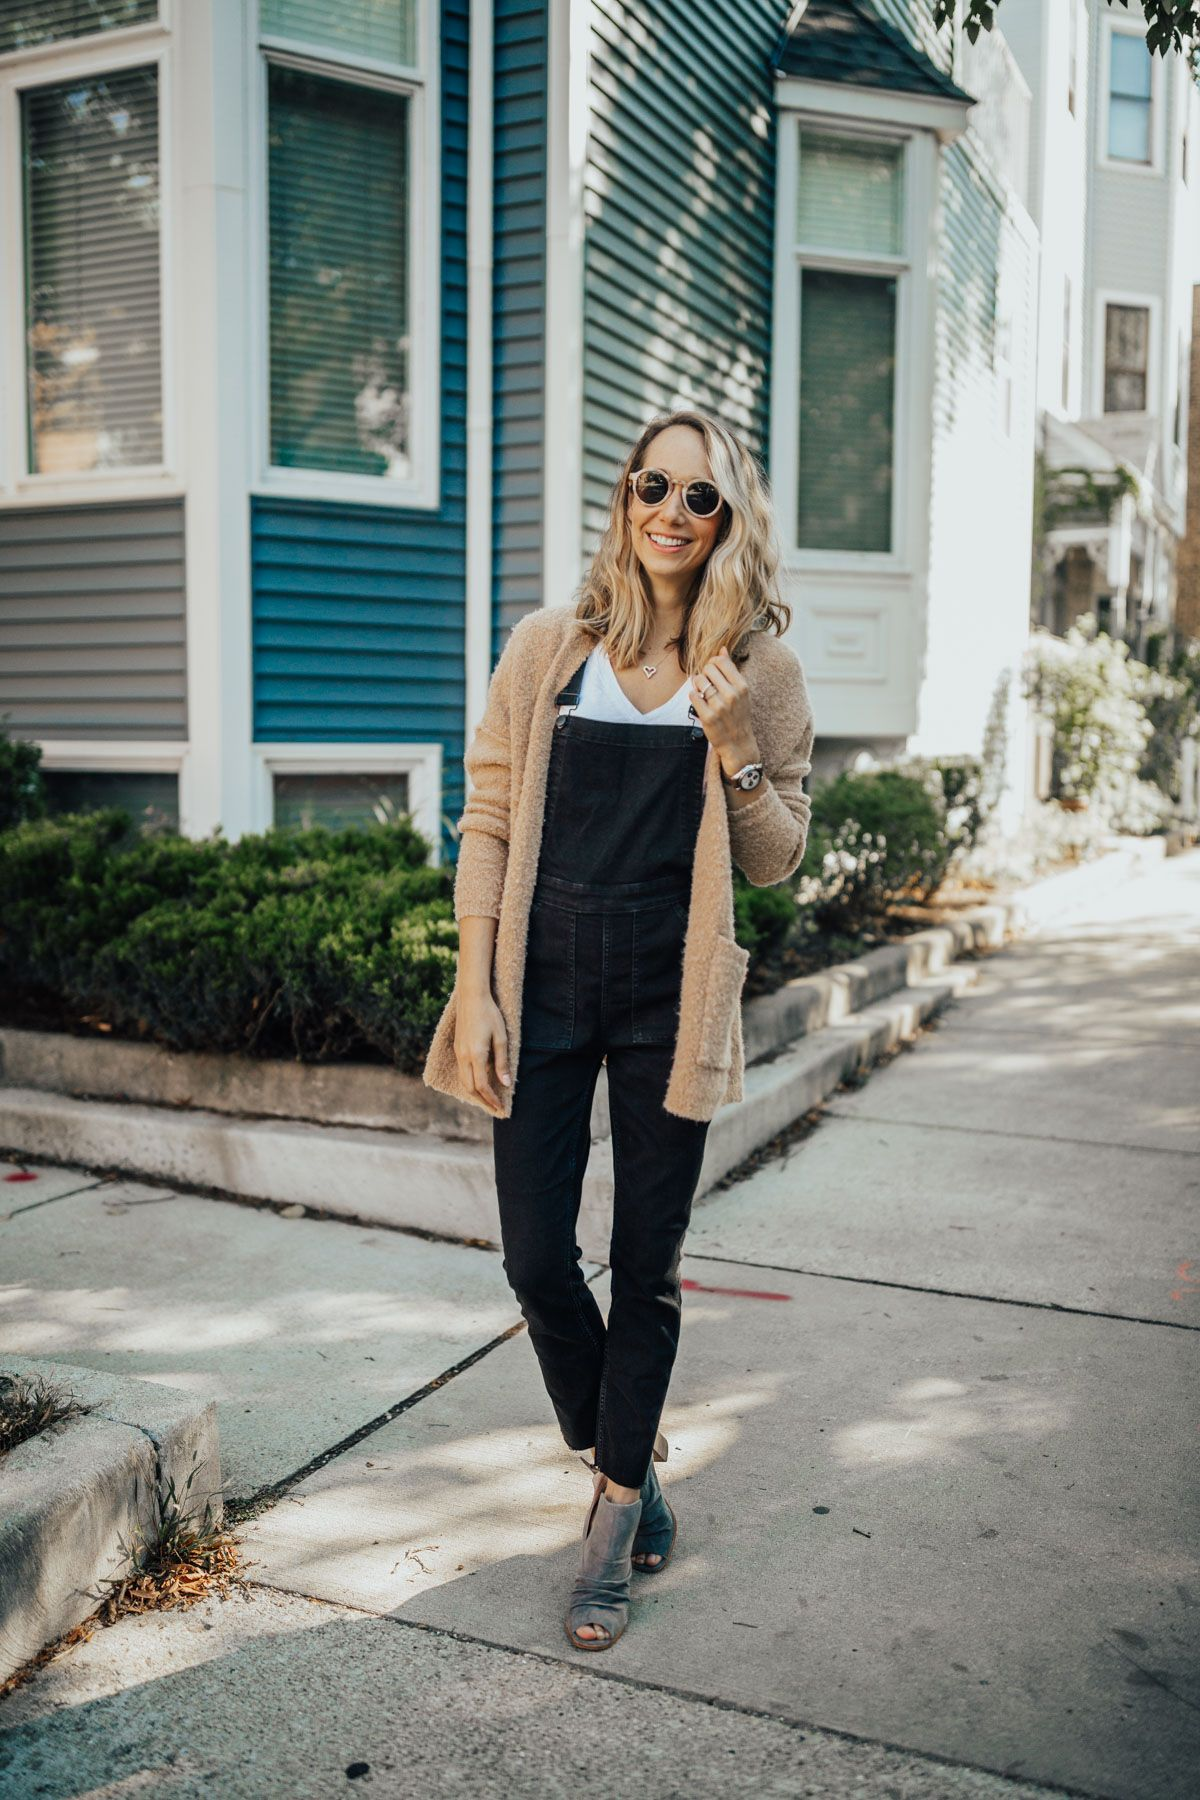 04e58fd381fe Autumn Winter Fashion · Spring Fashion · 4 Ways to Wear Overalls by Blair  Staky | The Fox & She Overalls Outfit